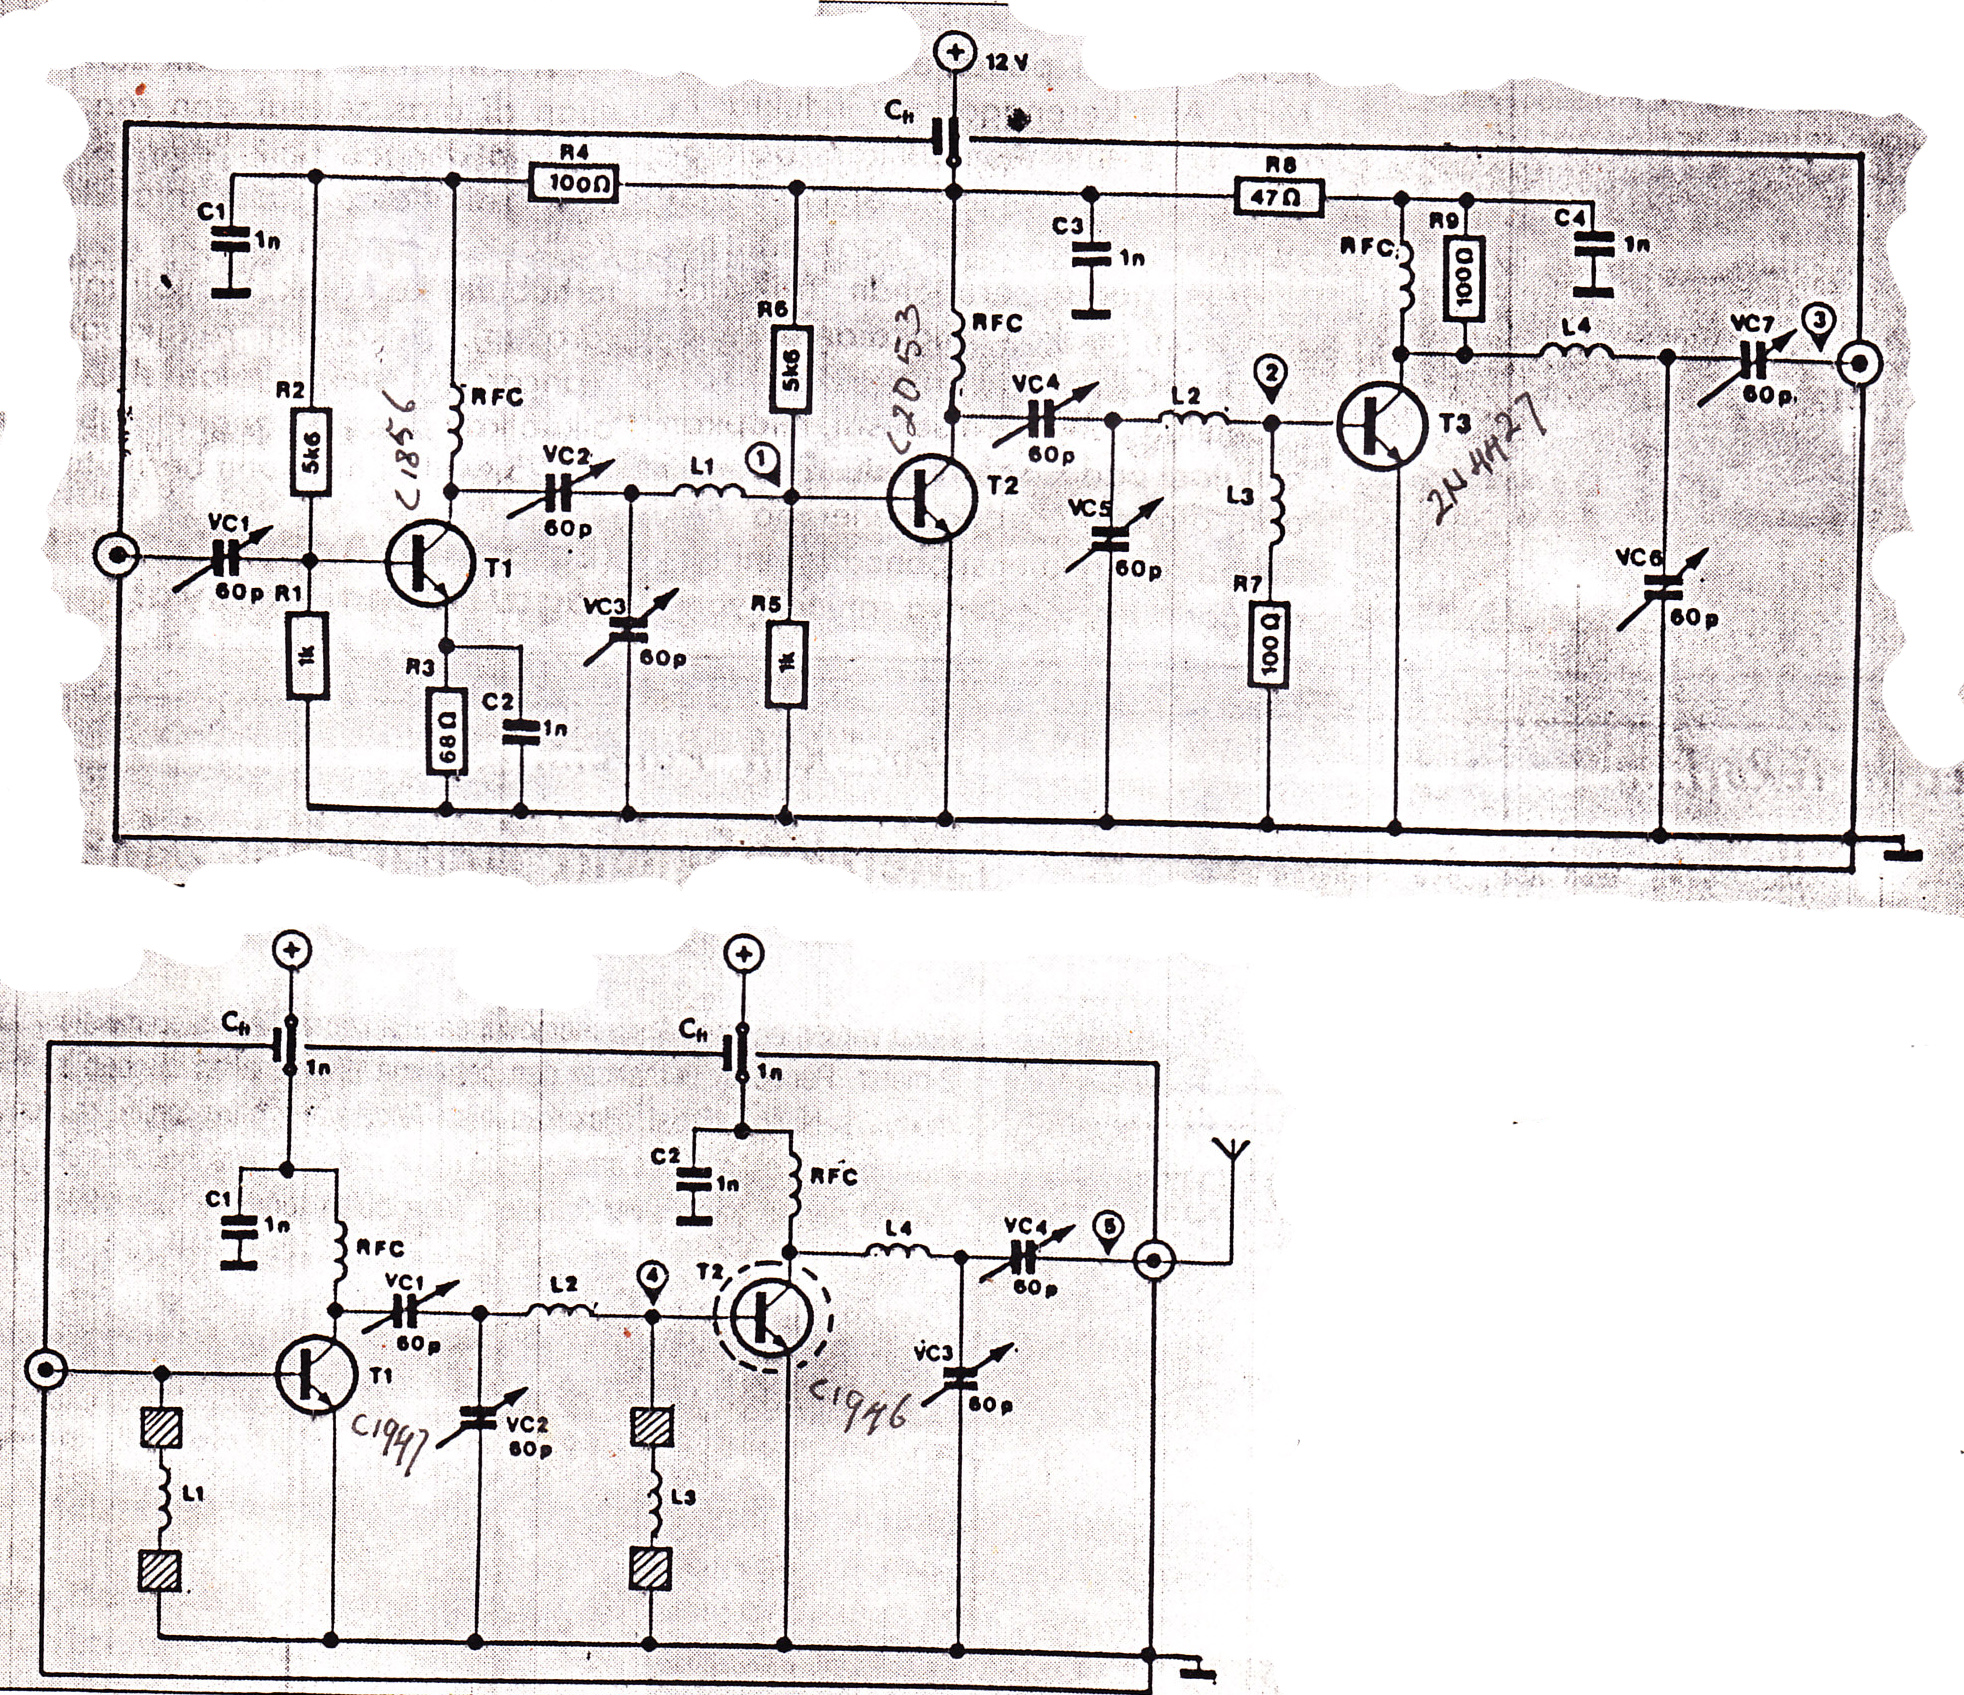 25w Fm Booster Transmitter Electronic Circuit Diagram And Layout Simple Alarm Using 12c509